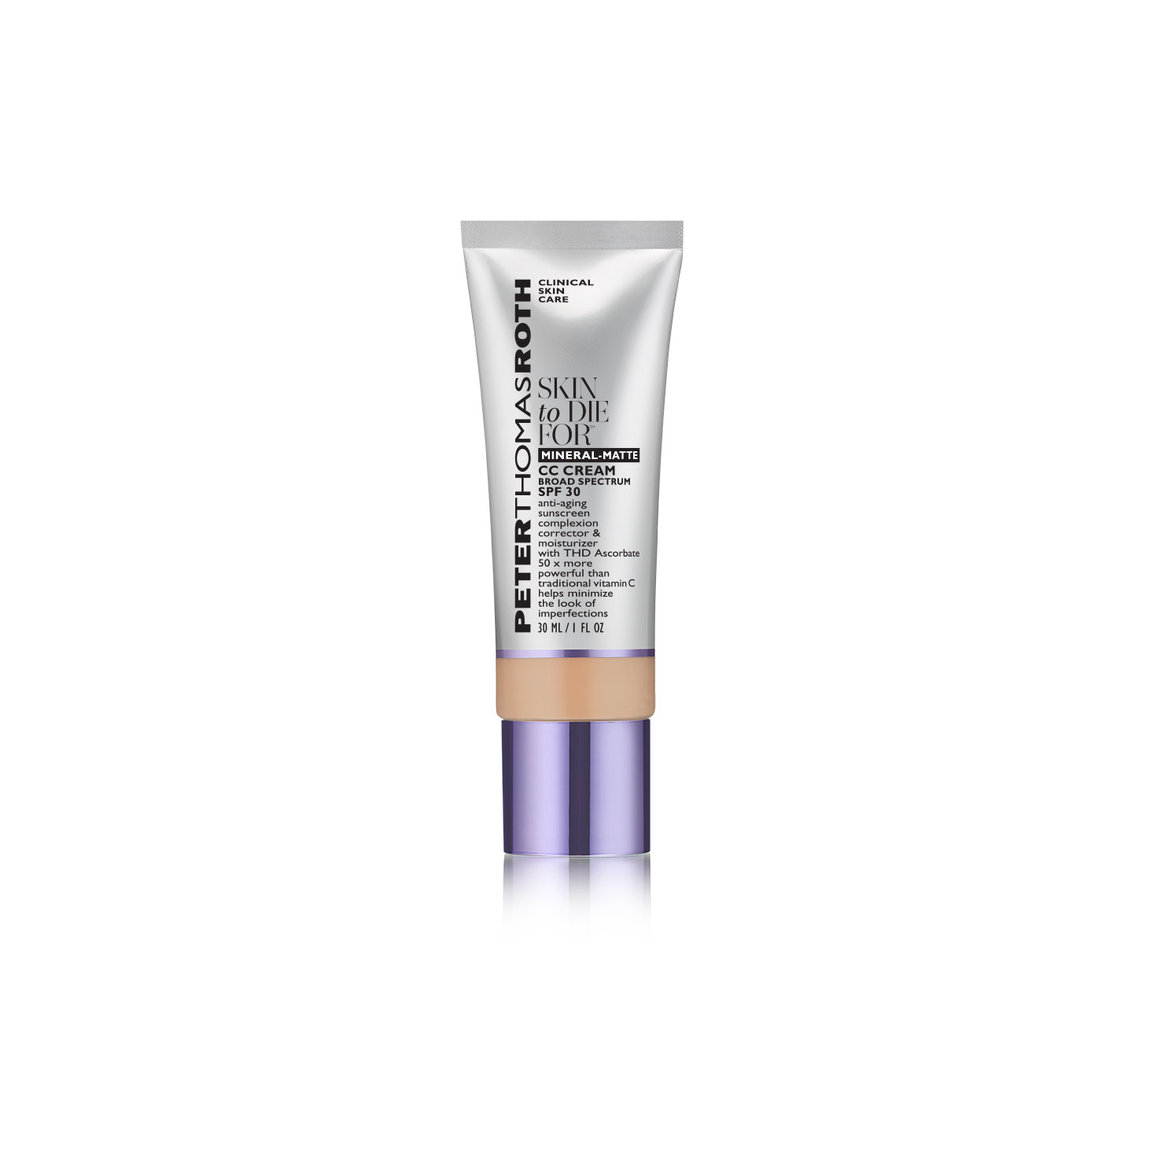 Peter Thomas Roth Skin To Die For Mineral-Matte CC Cream SPF 30 Light product smear.